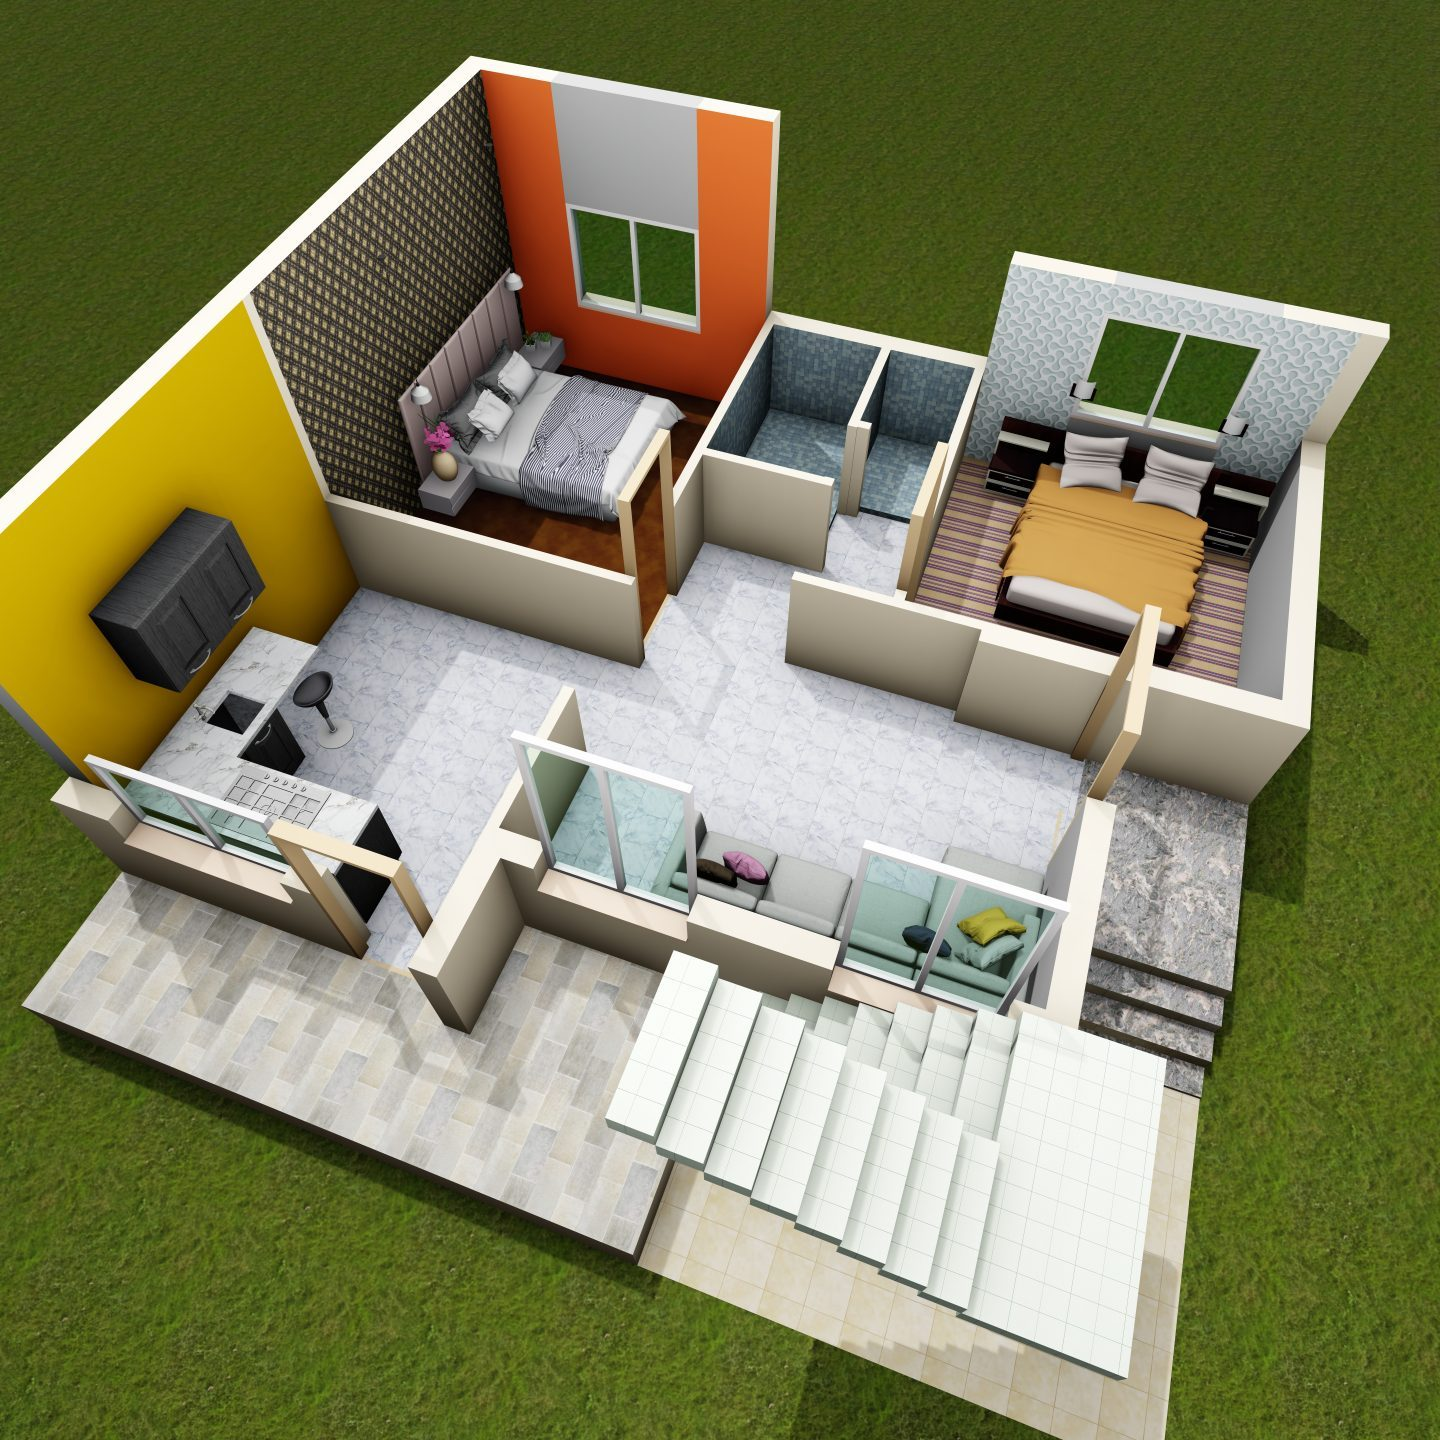 30 by 30 house plan